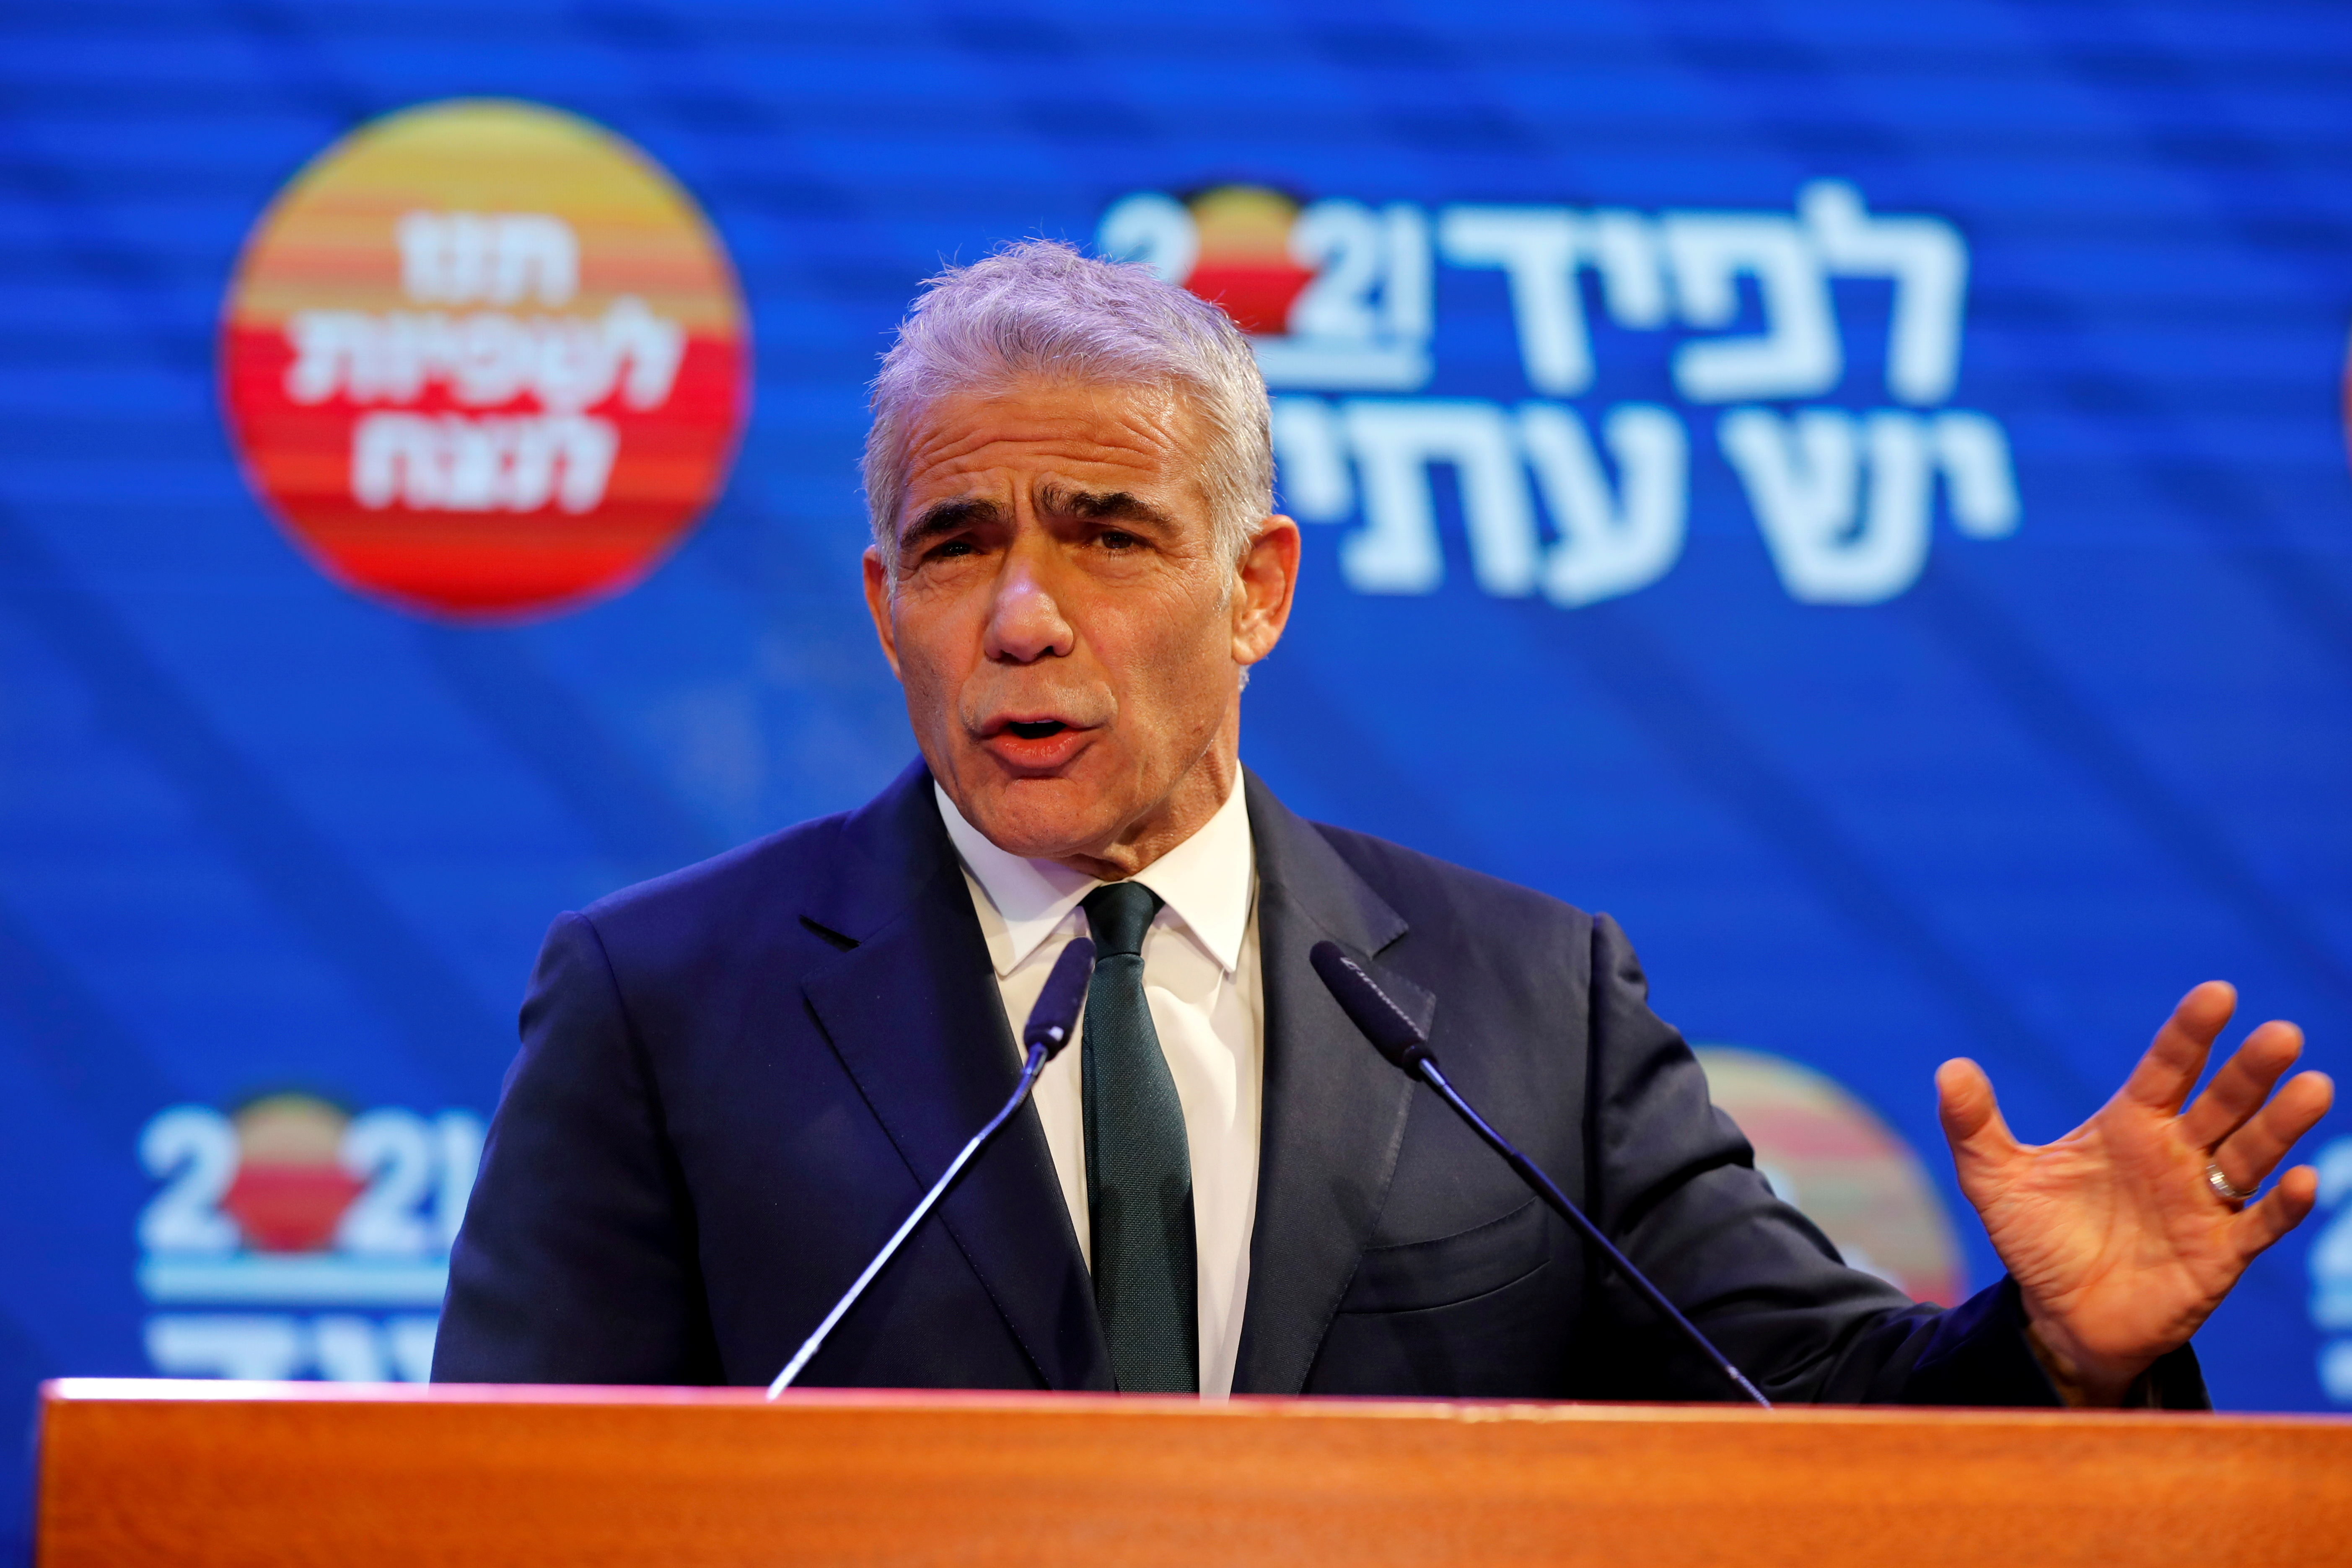 Yesh Atid party leader Yair Lapid gestures as he delivers a speech following the announcement of exit polls in Israel's general election at his party headquarters in Tel Aviv, Israel March 24, 2021. REUTERS/Amir Cohen